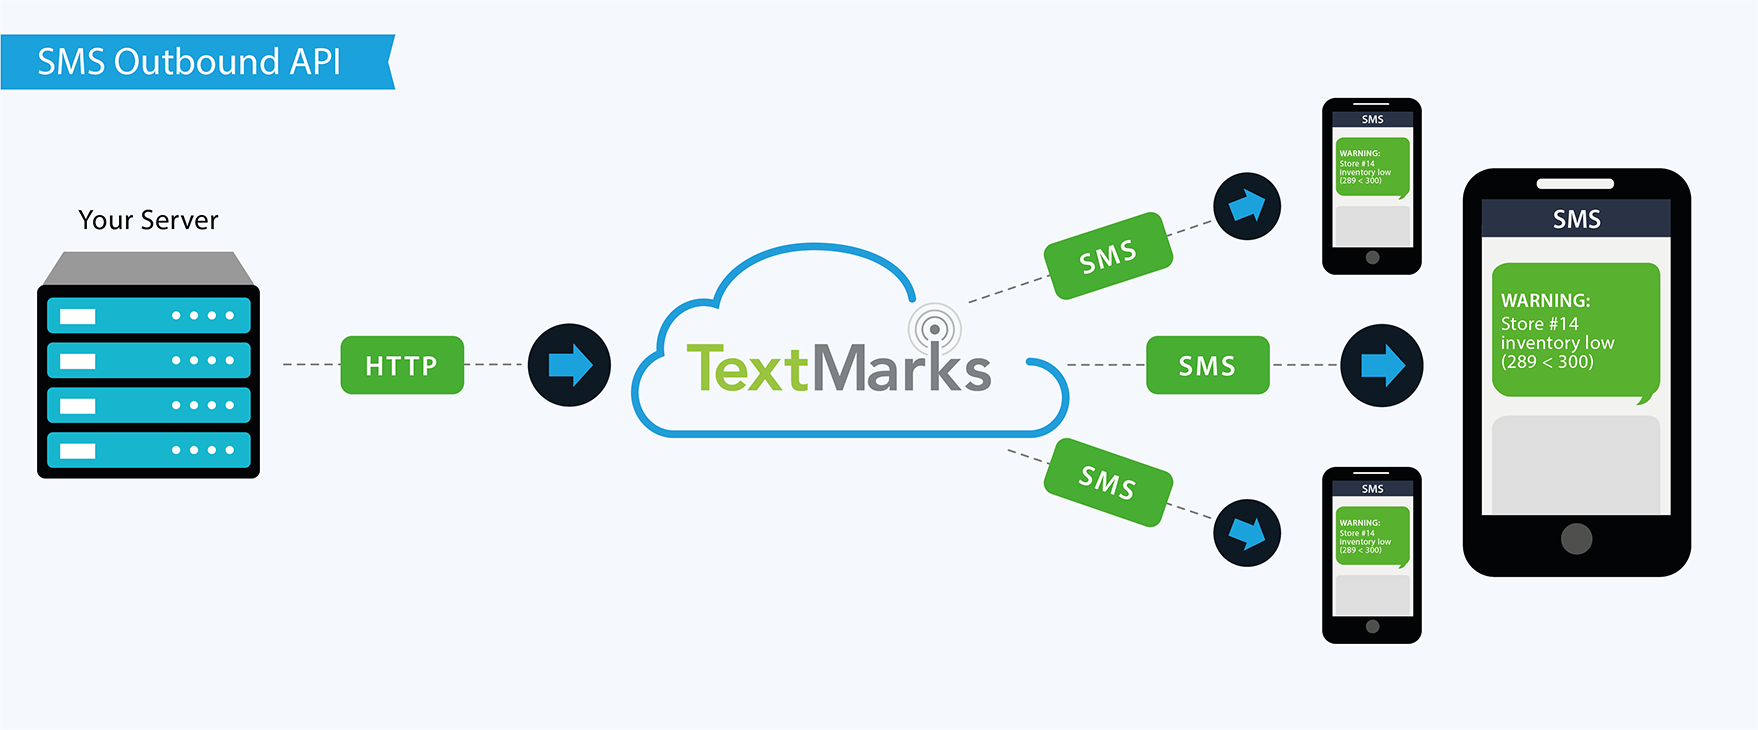 sms api outbound diagram